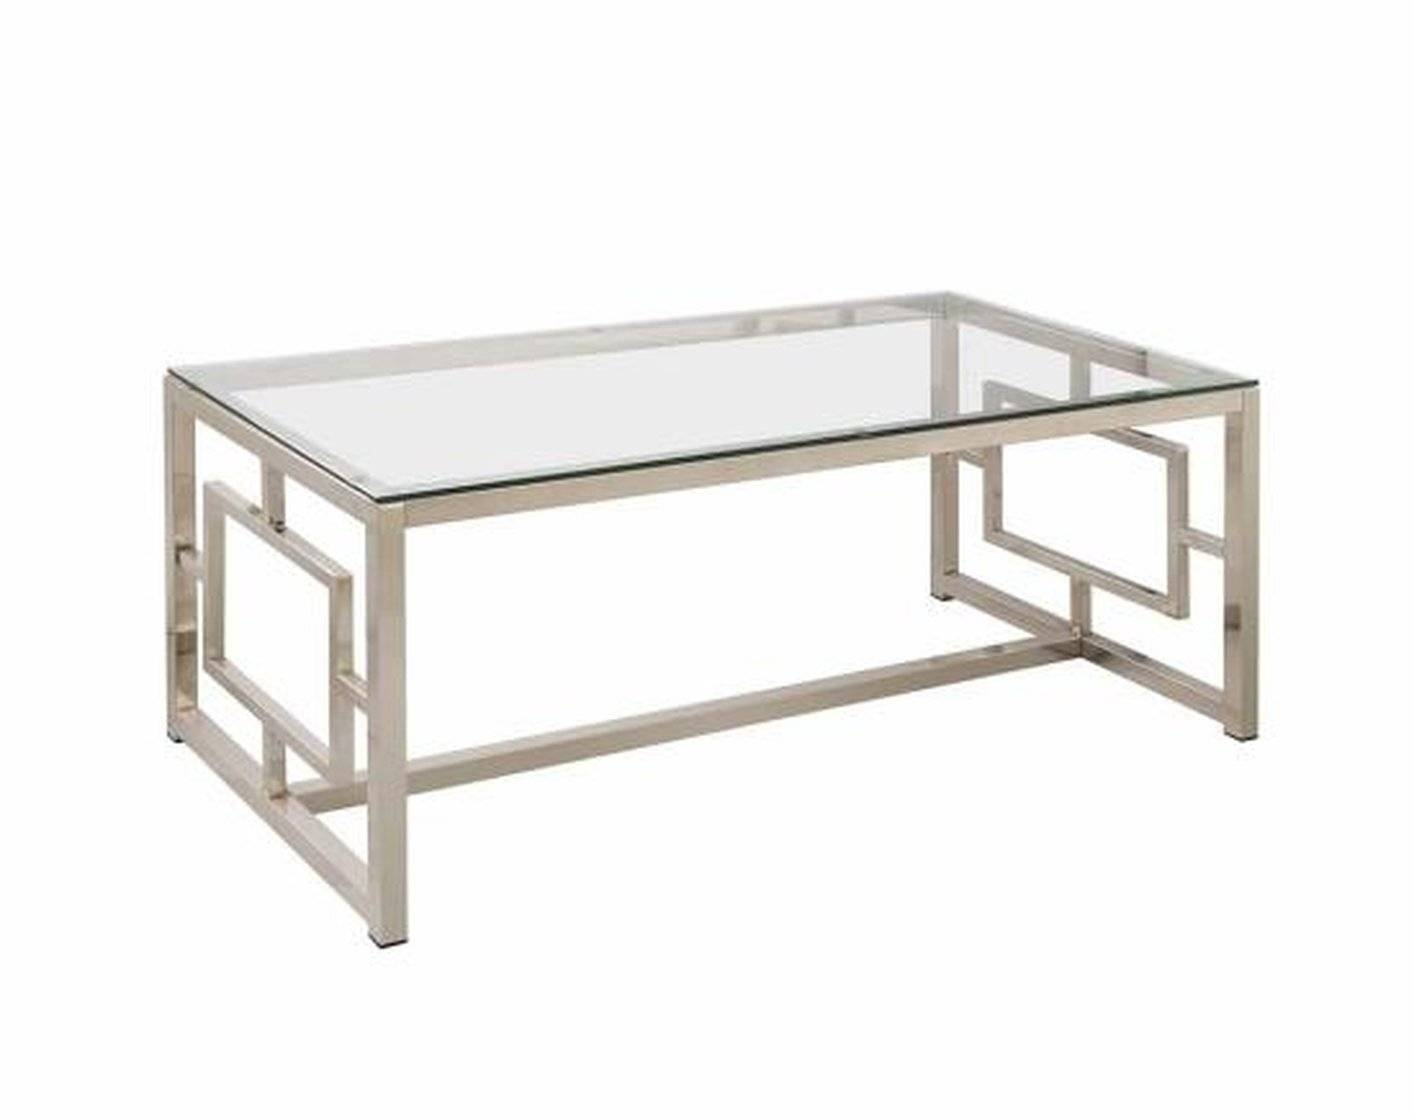 Coffee Table: Astounding Silver And Glass Coffee Table Ideas With Regard To Coffee Tables Metal And Glass (View 8 of 30)